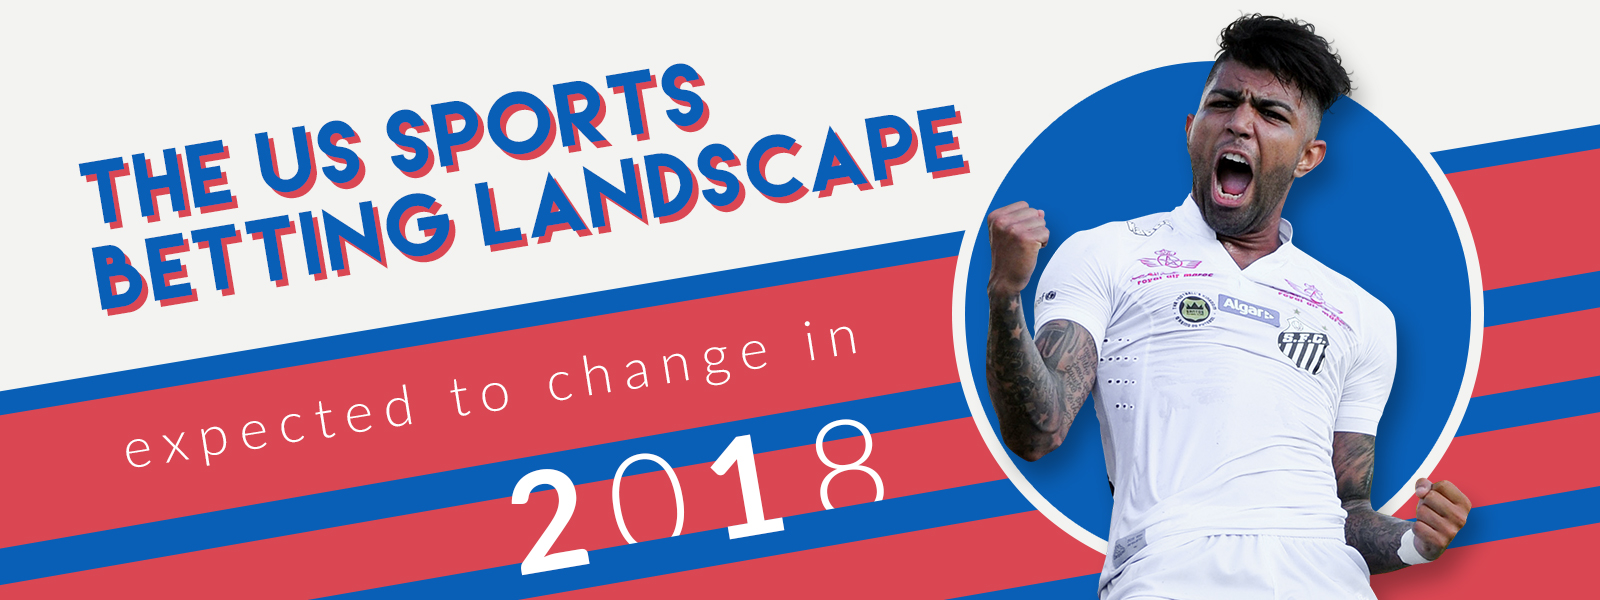 The US sports betting landscape expected to change in 2018